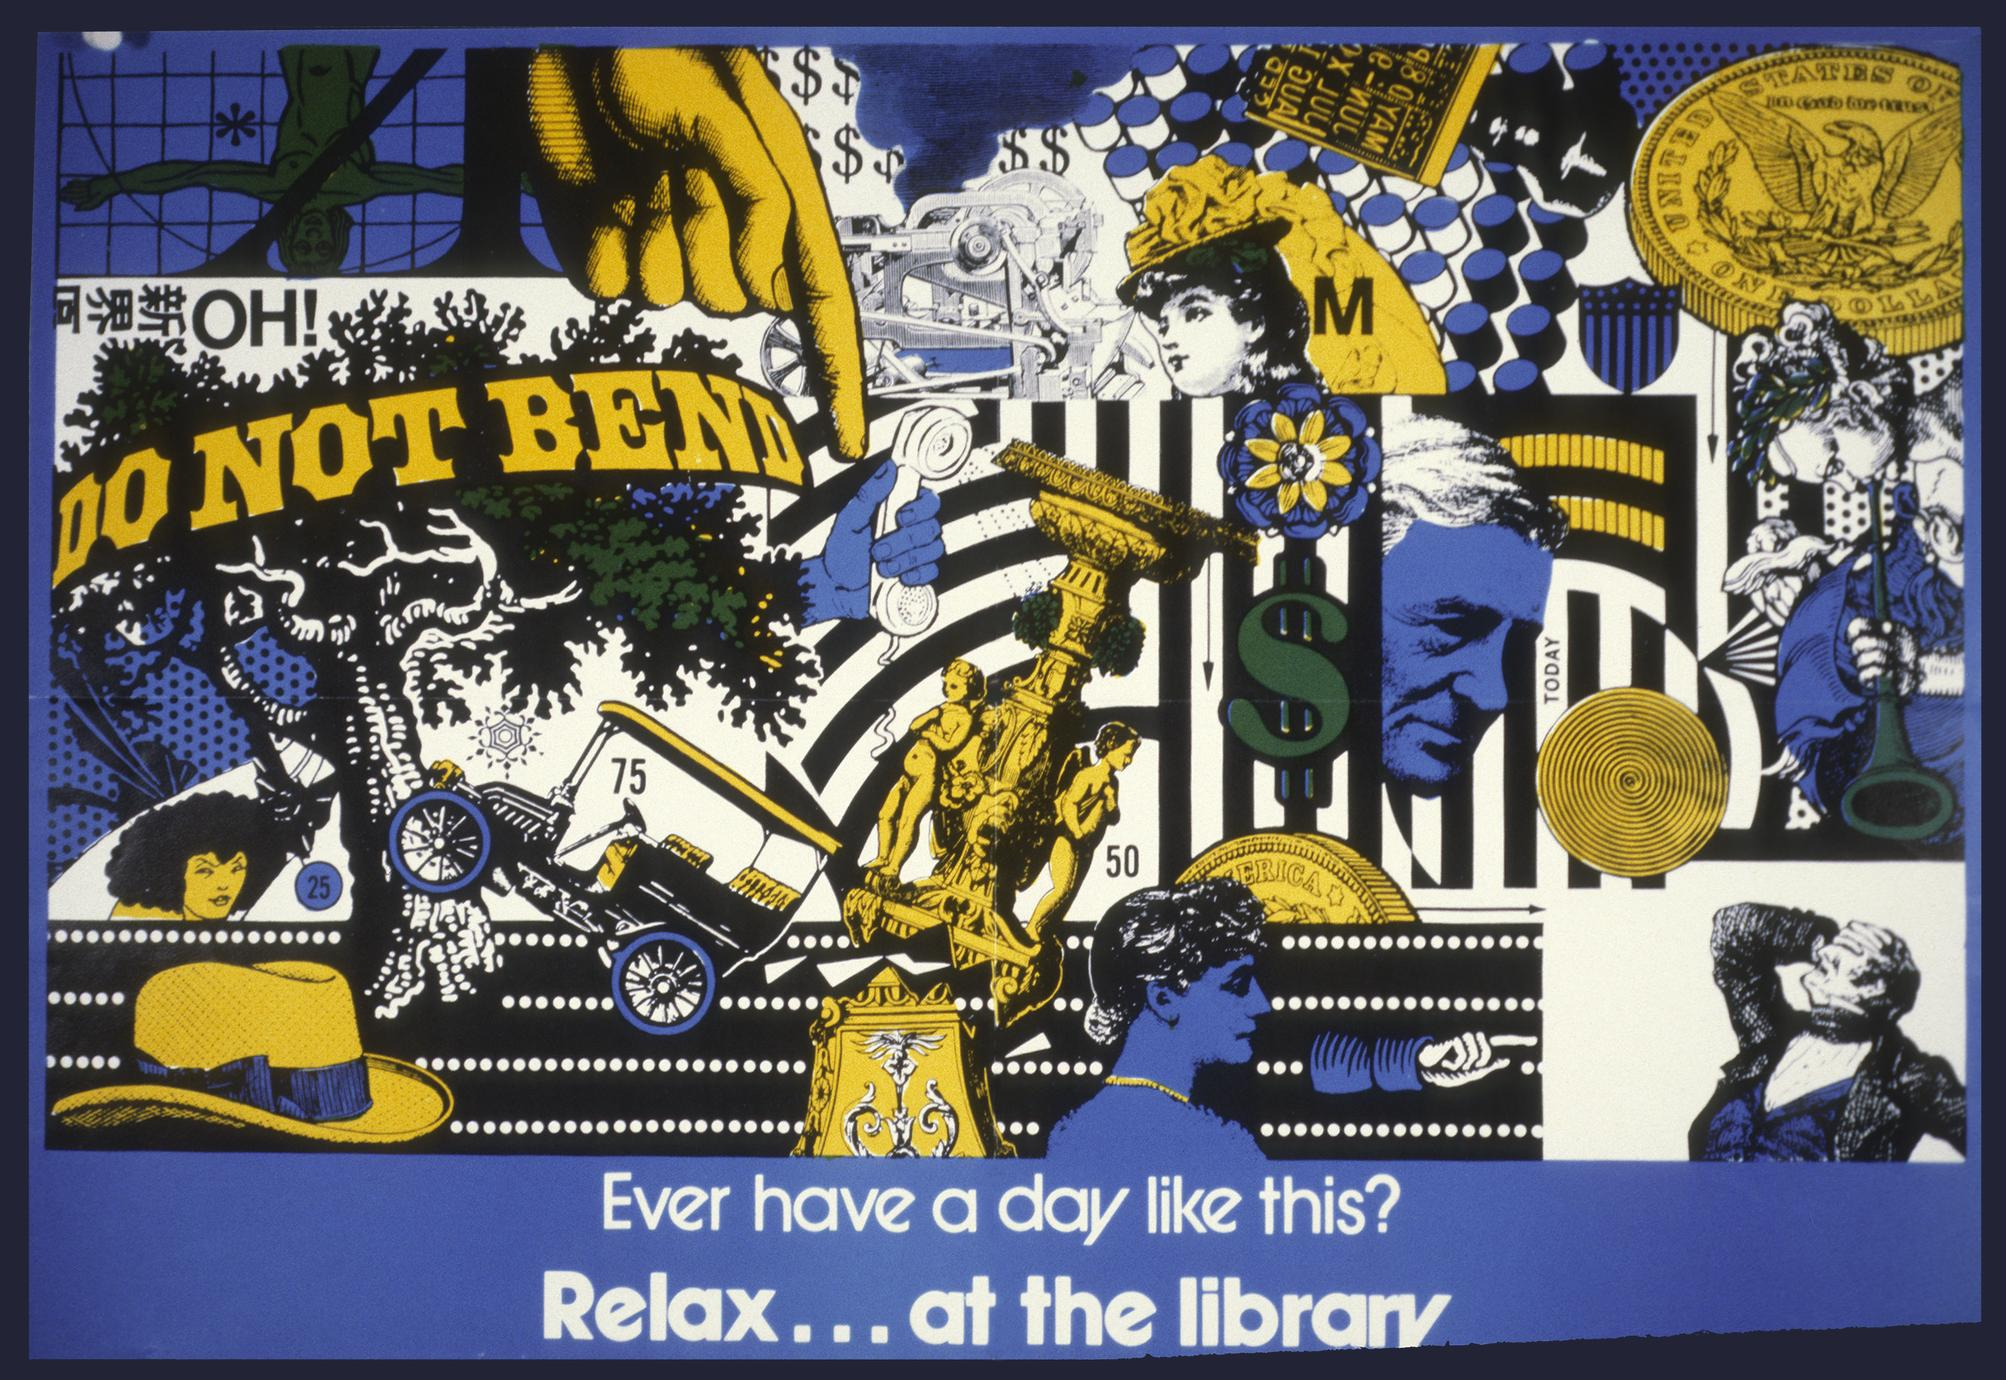 Ever had a day like this : relax...at the library